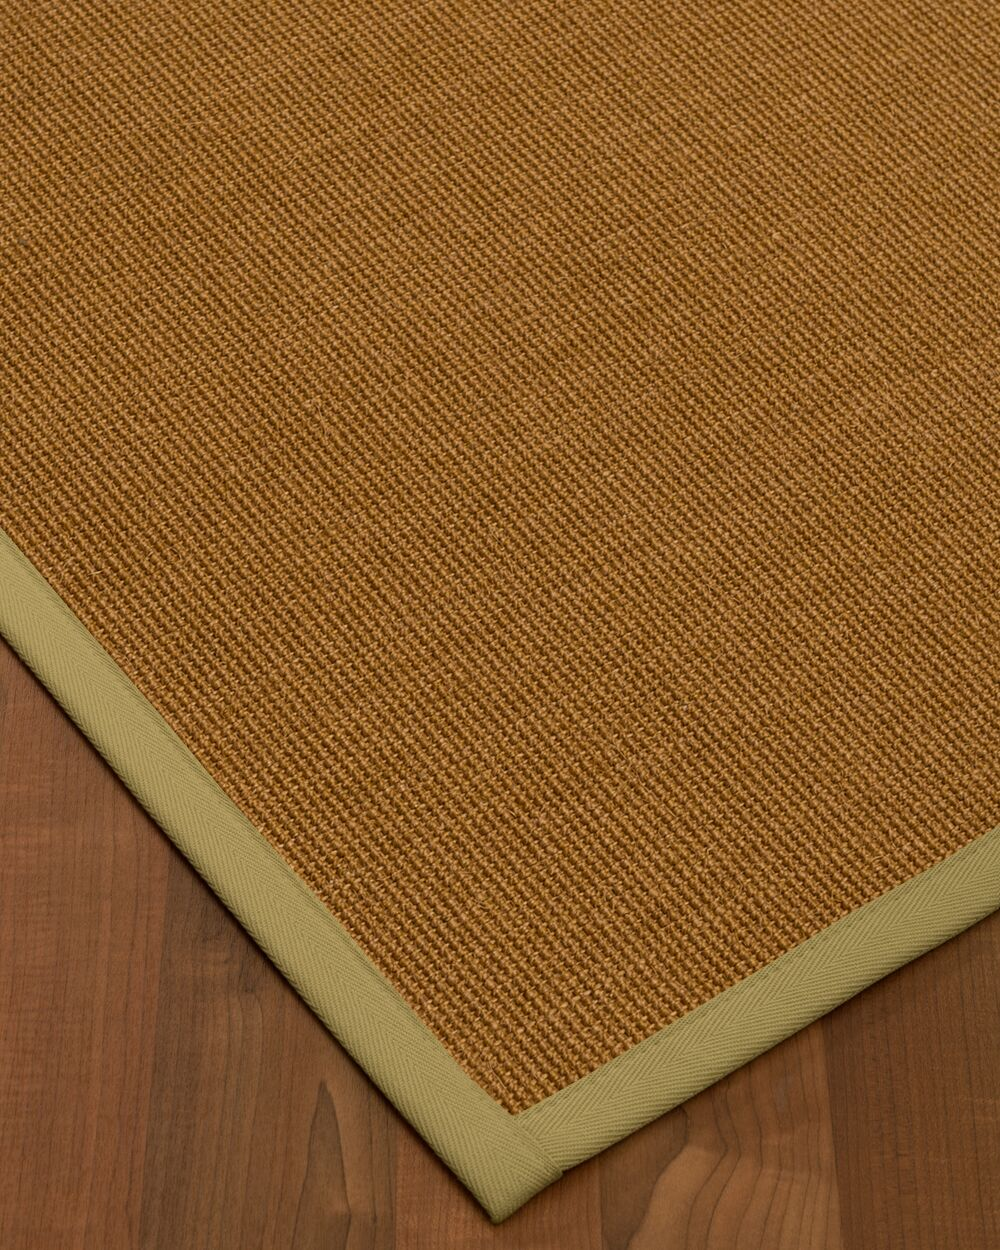 Antonina Border Hand-Woven Brown/Beige Area Rug Rug Size: Rectangle 6' x 9', Rug Pad Included: Yes